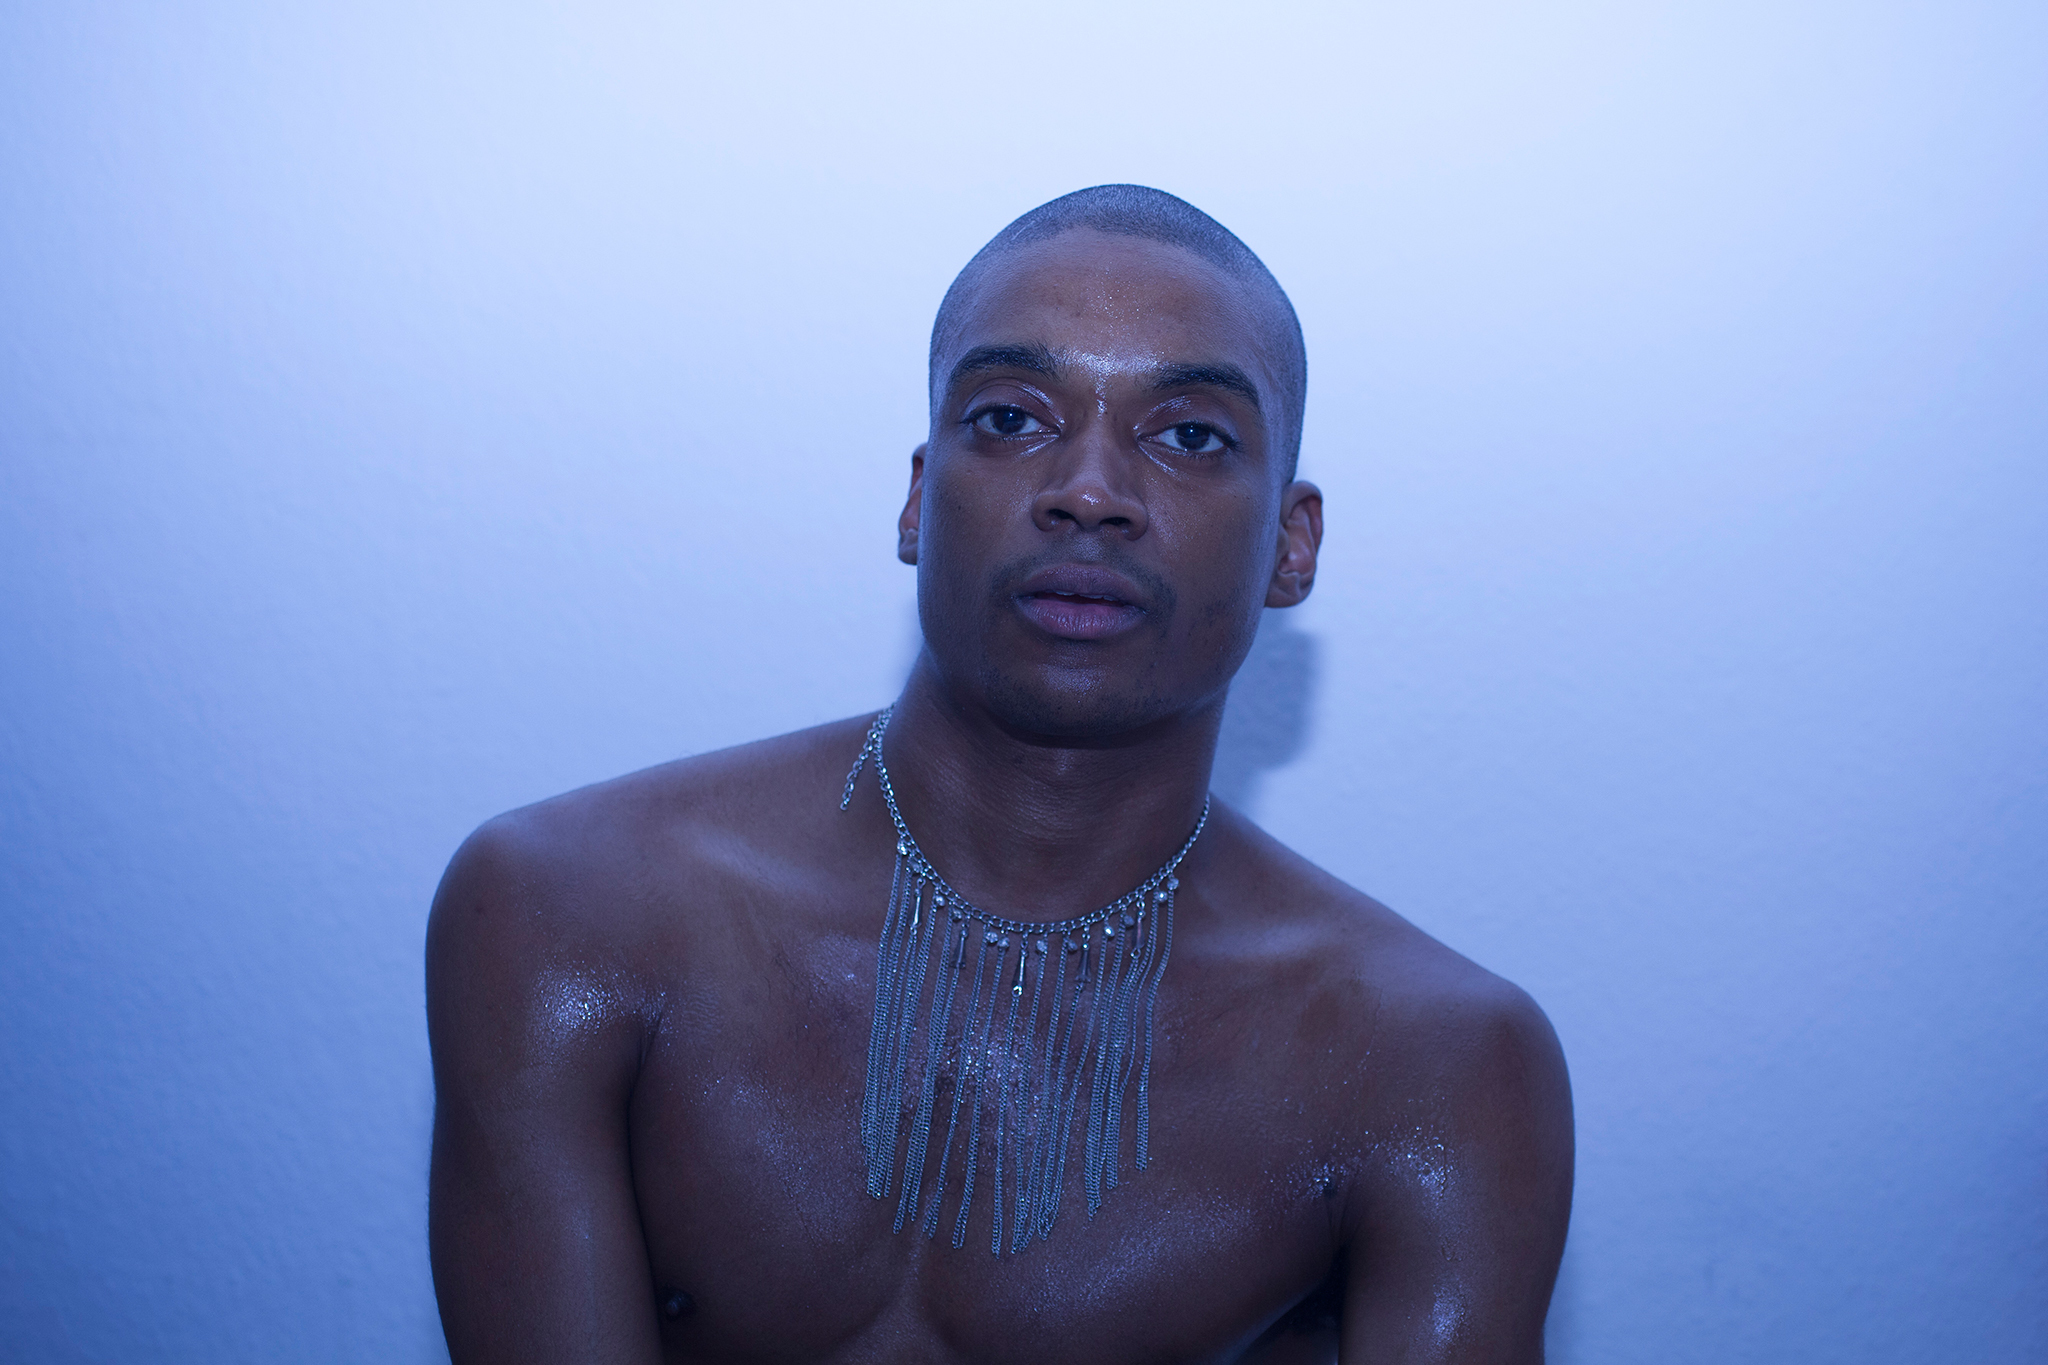 If you're feeling broody: Lotic